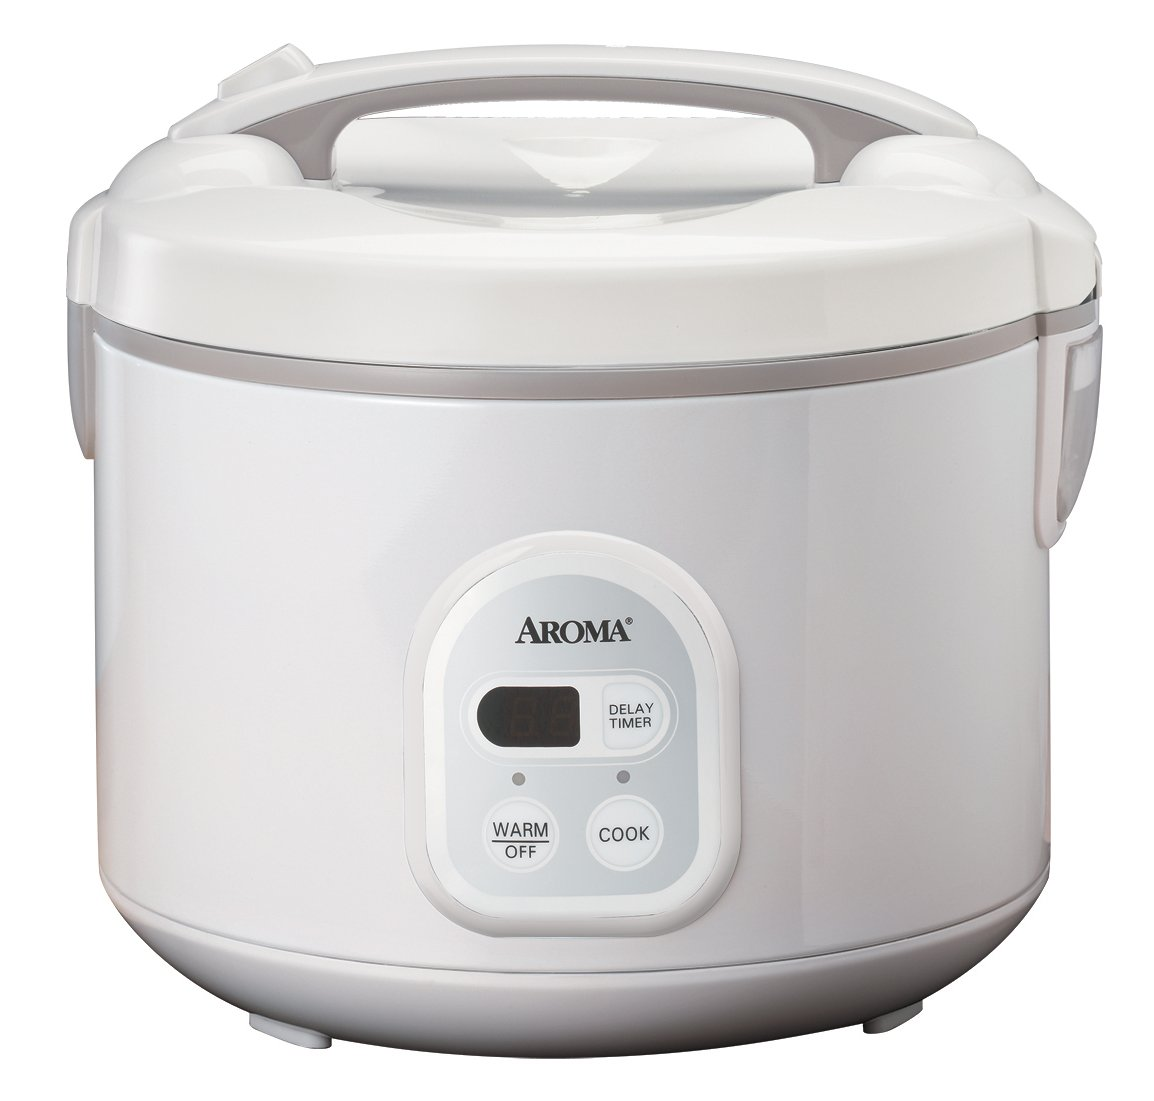 The Aroma Digital Rice Cooker And Food Steamer - Product Talk